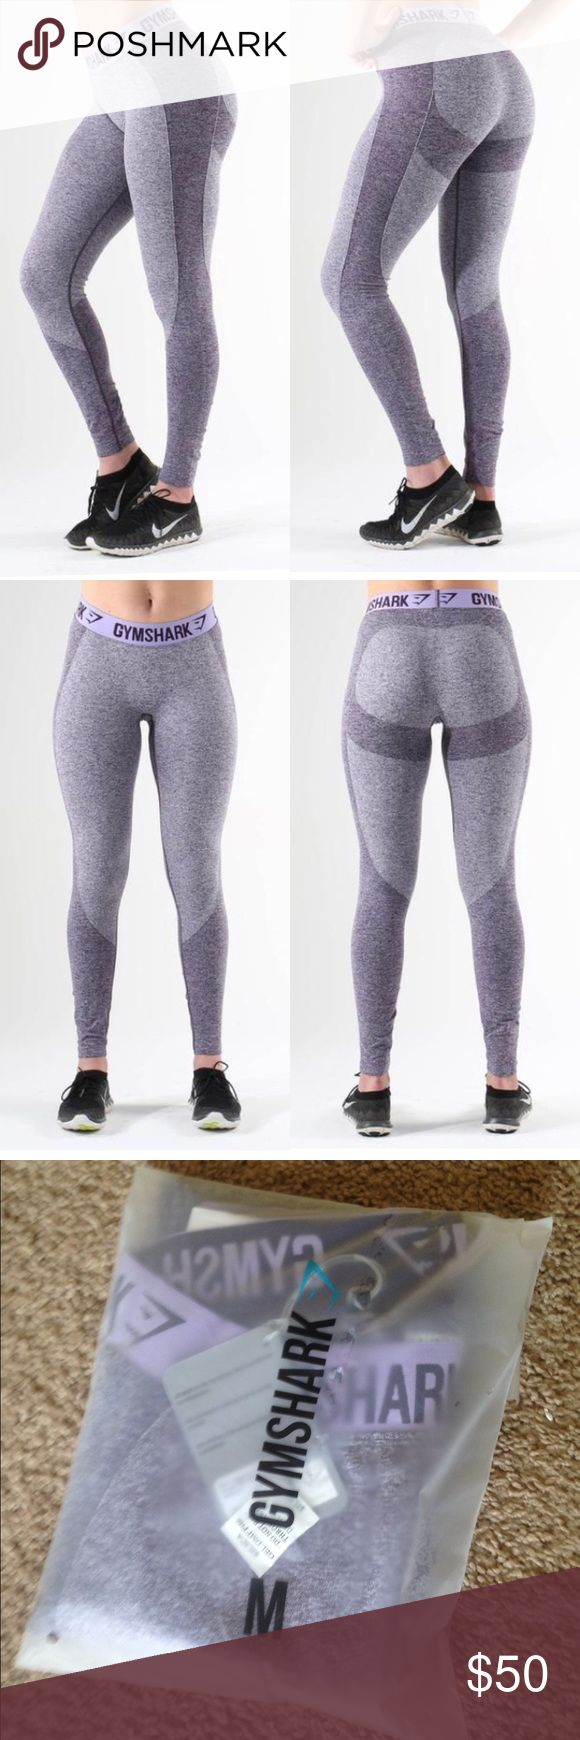 NWT Gymshark flex leggings Purple marl/soft lilac Gymshark flex leggings. Size medium. NEW WITH TAGS! Only tried on. Will ship quickly :) Gymshark Pants Leggings